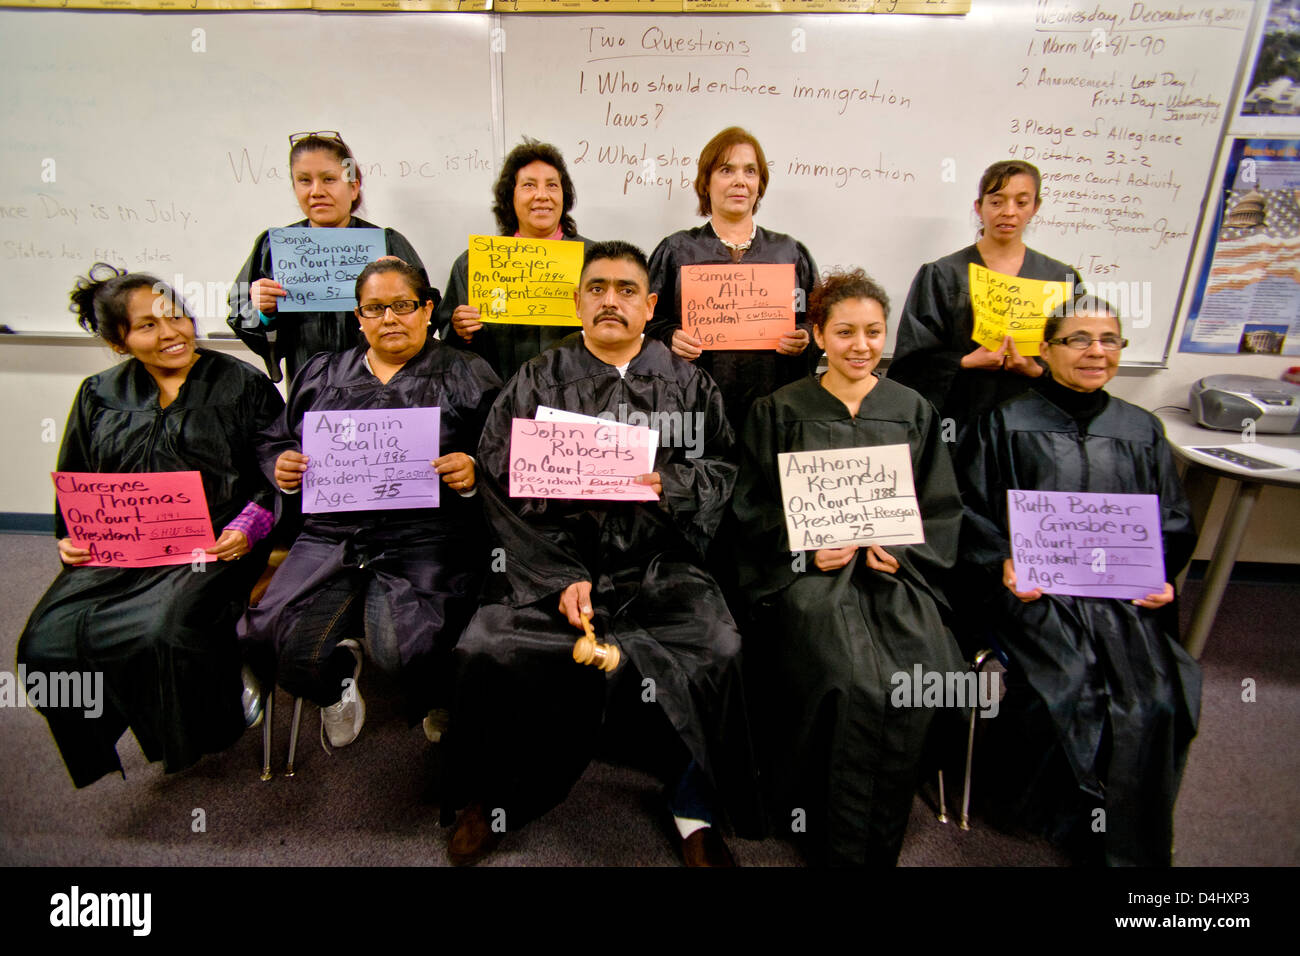 Mostly-Hispanic students at an adult-education U.S. citizenship class in San Juan Capistrano, CA - Stock Image